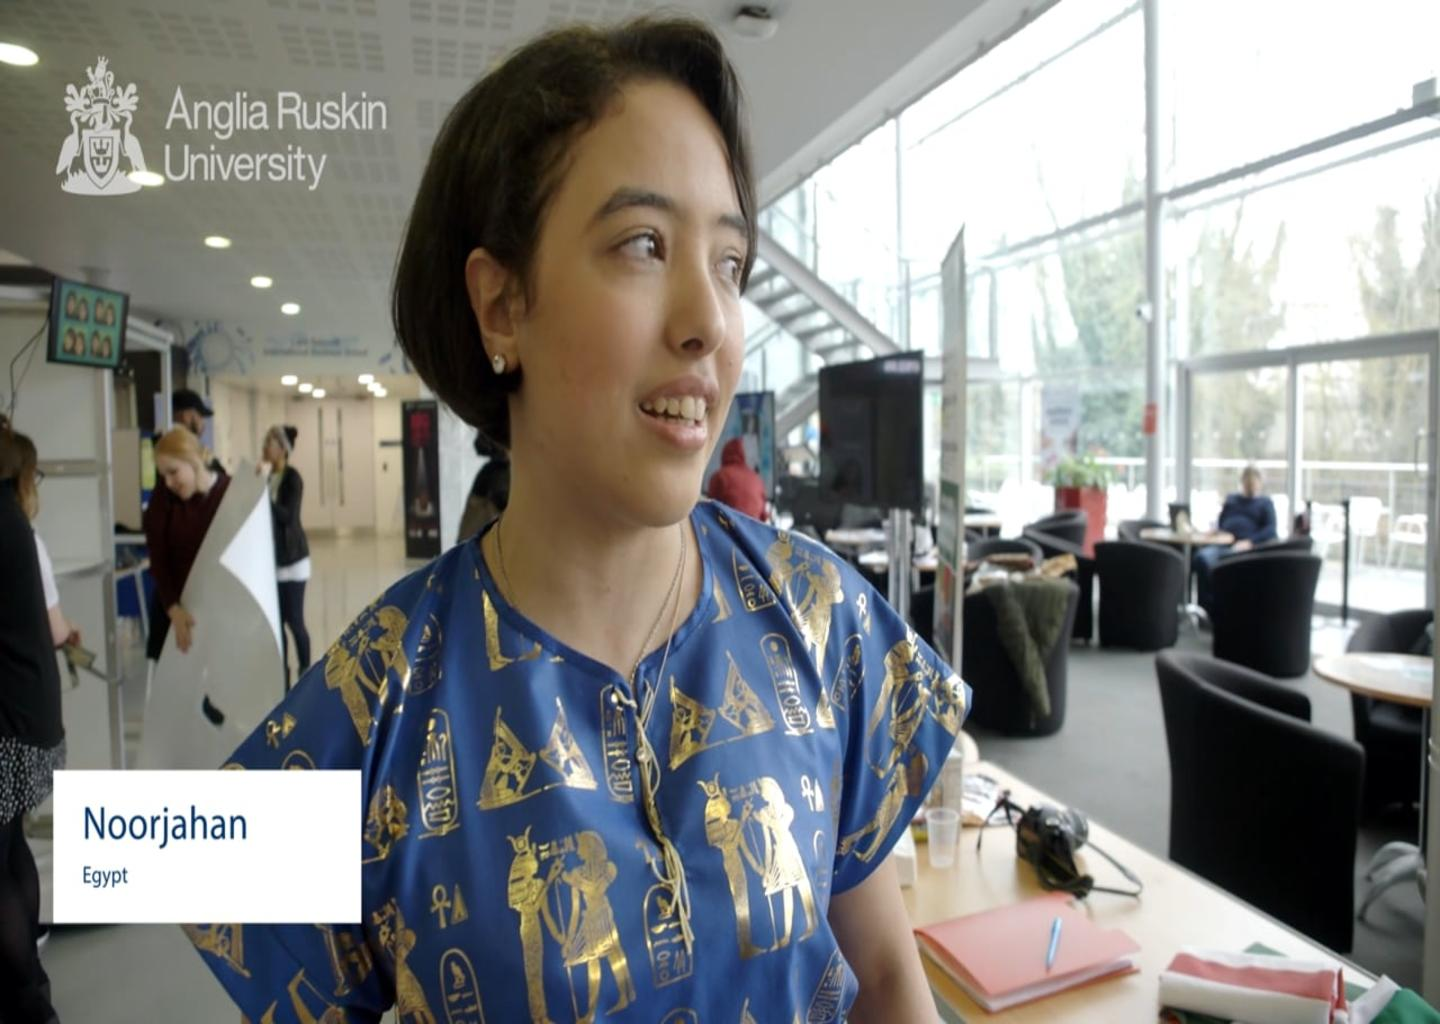 316 Courses Available At Anglia Ruskin University In United Kingdom The Ranking 301 Idp Oman